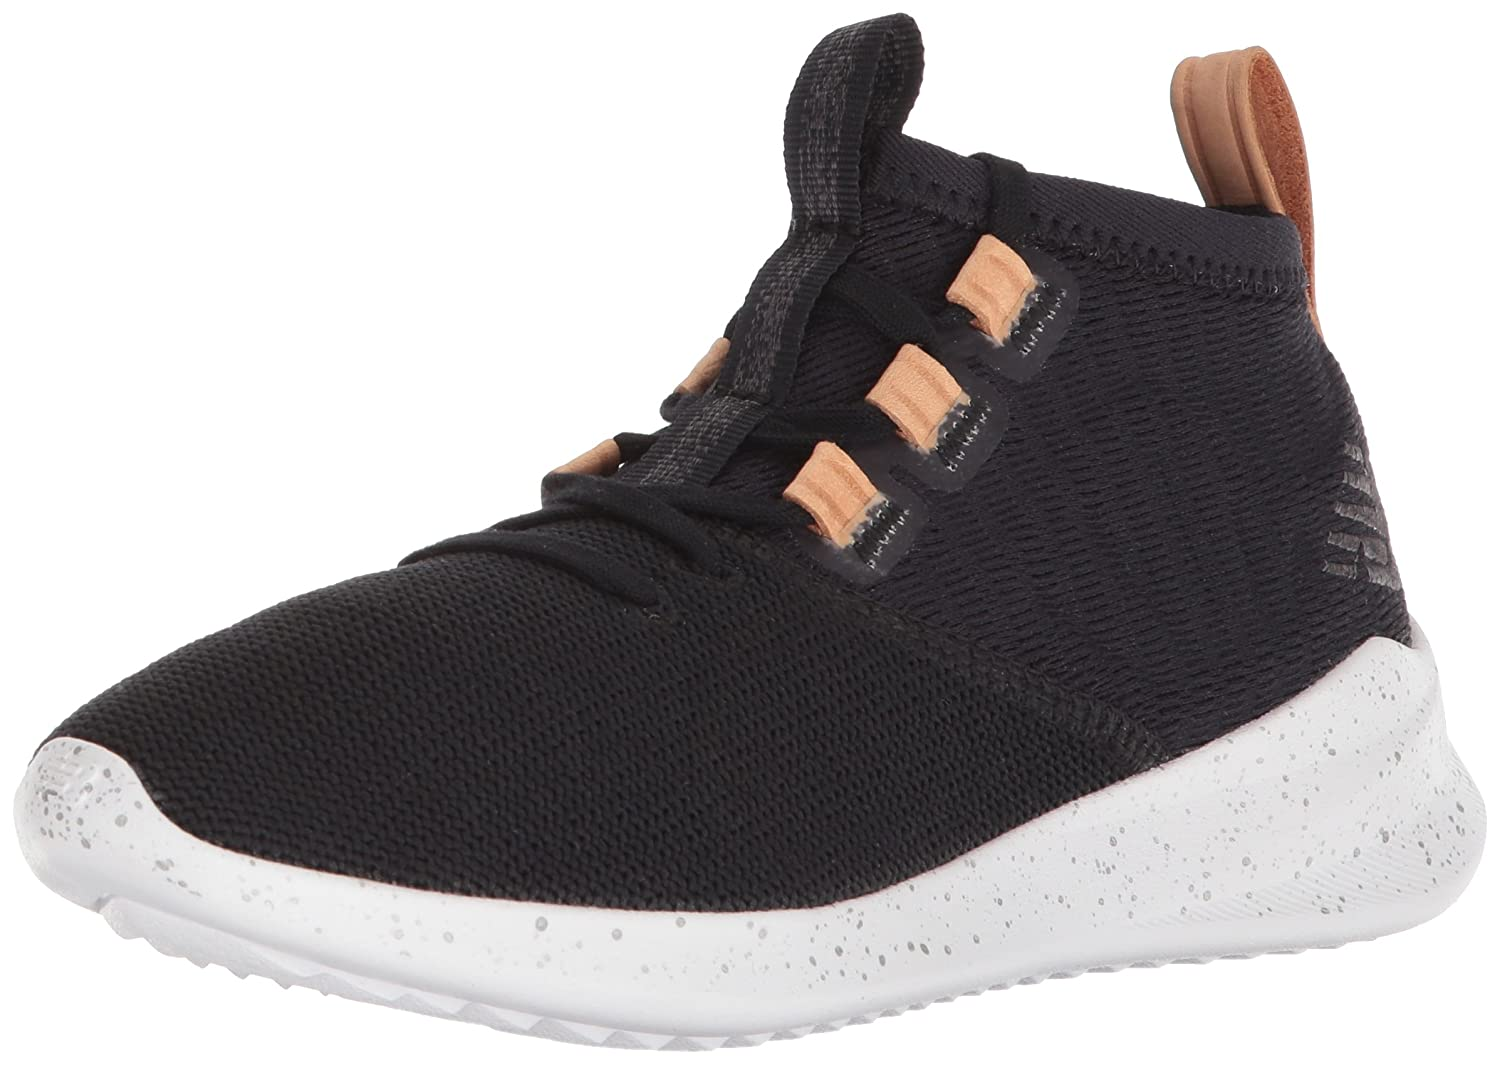 New Balance Women's Cypher V1 Running Shoe B0751Q8THM 5.5 B(M) US|Black/Veg Tan Leather